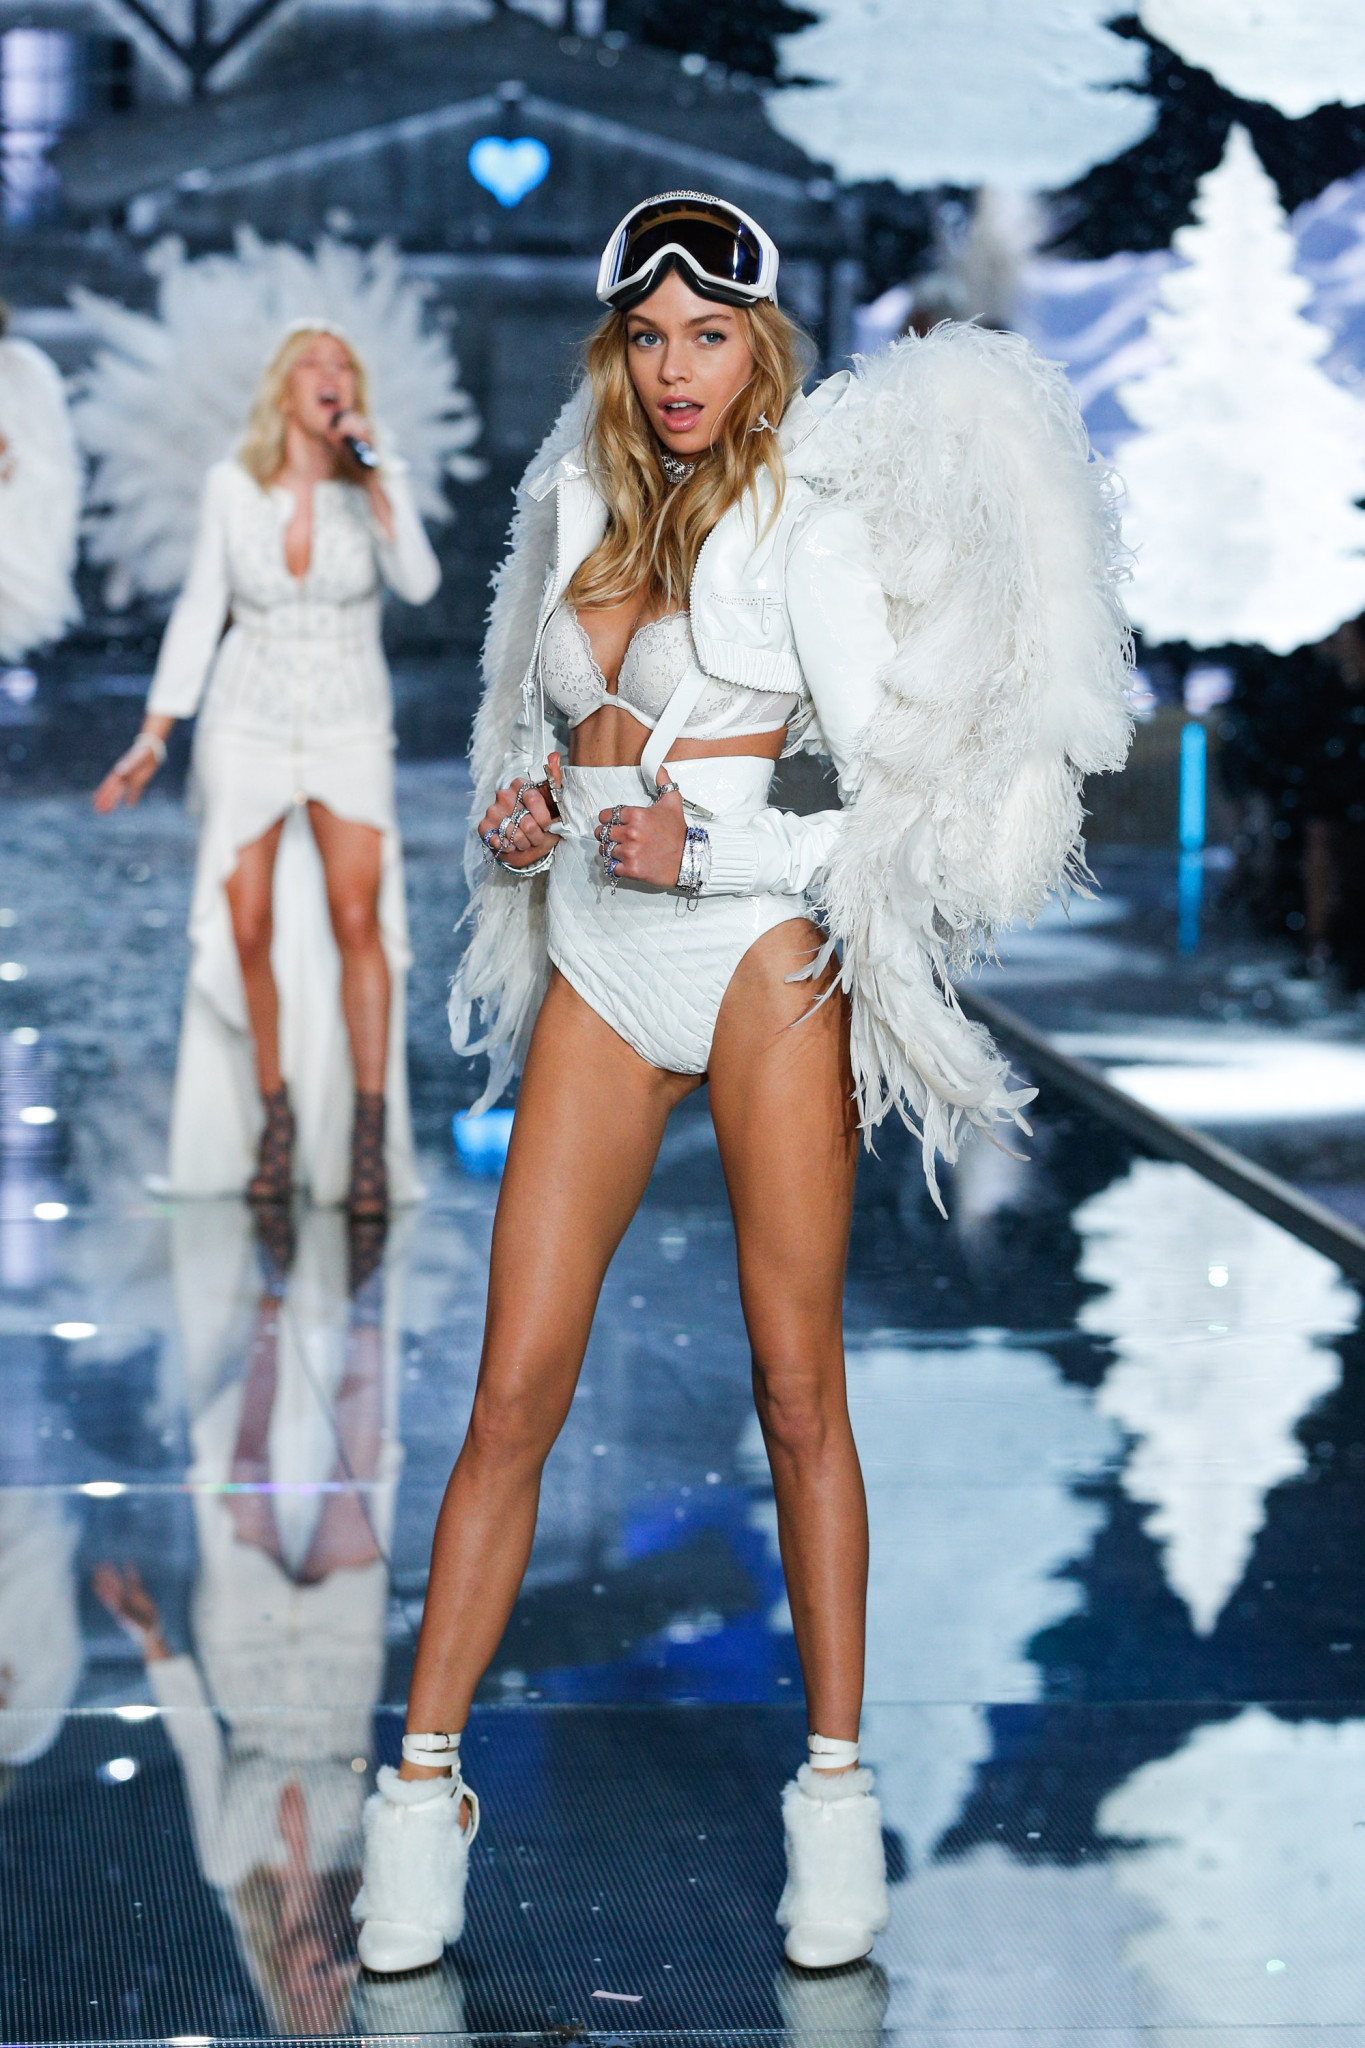 Stella Maxwell walks the runway at the 2015 Victoria's Secret Fashion Show in New York City on November 10th, 2015